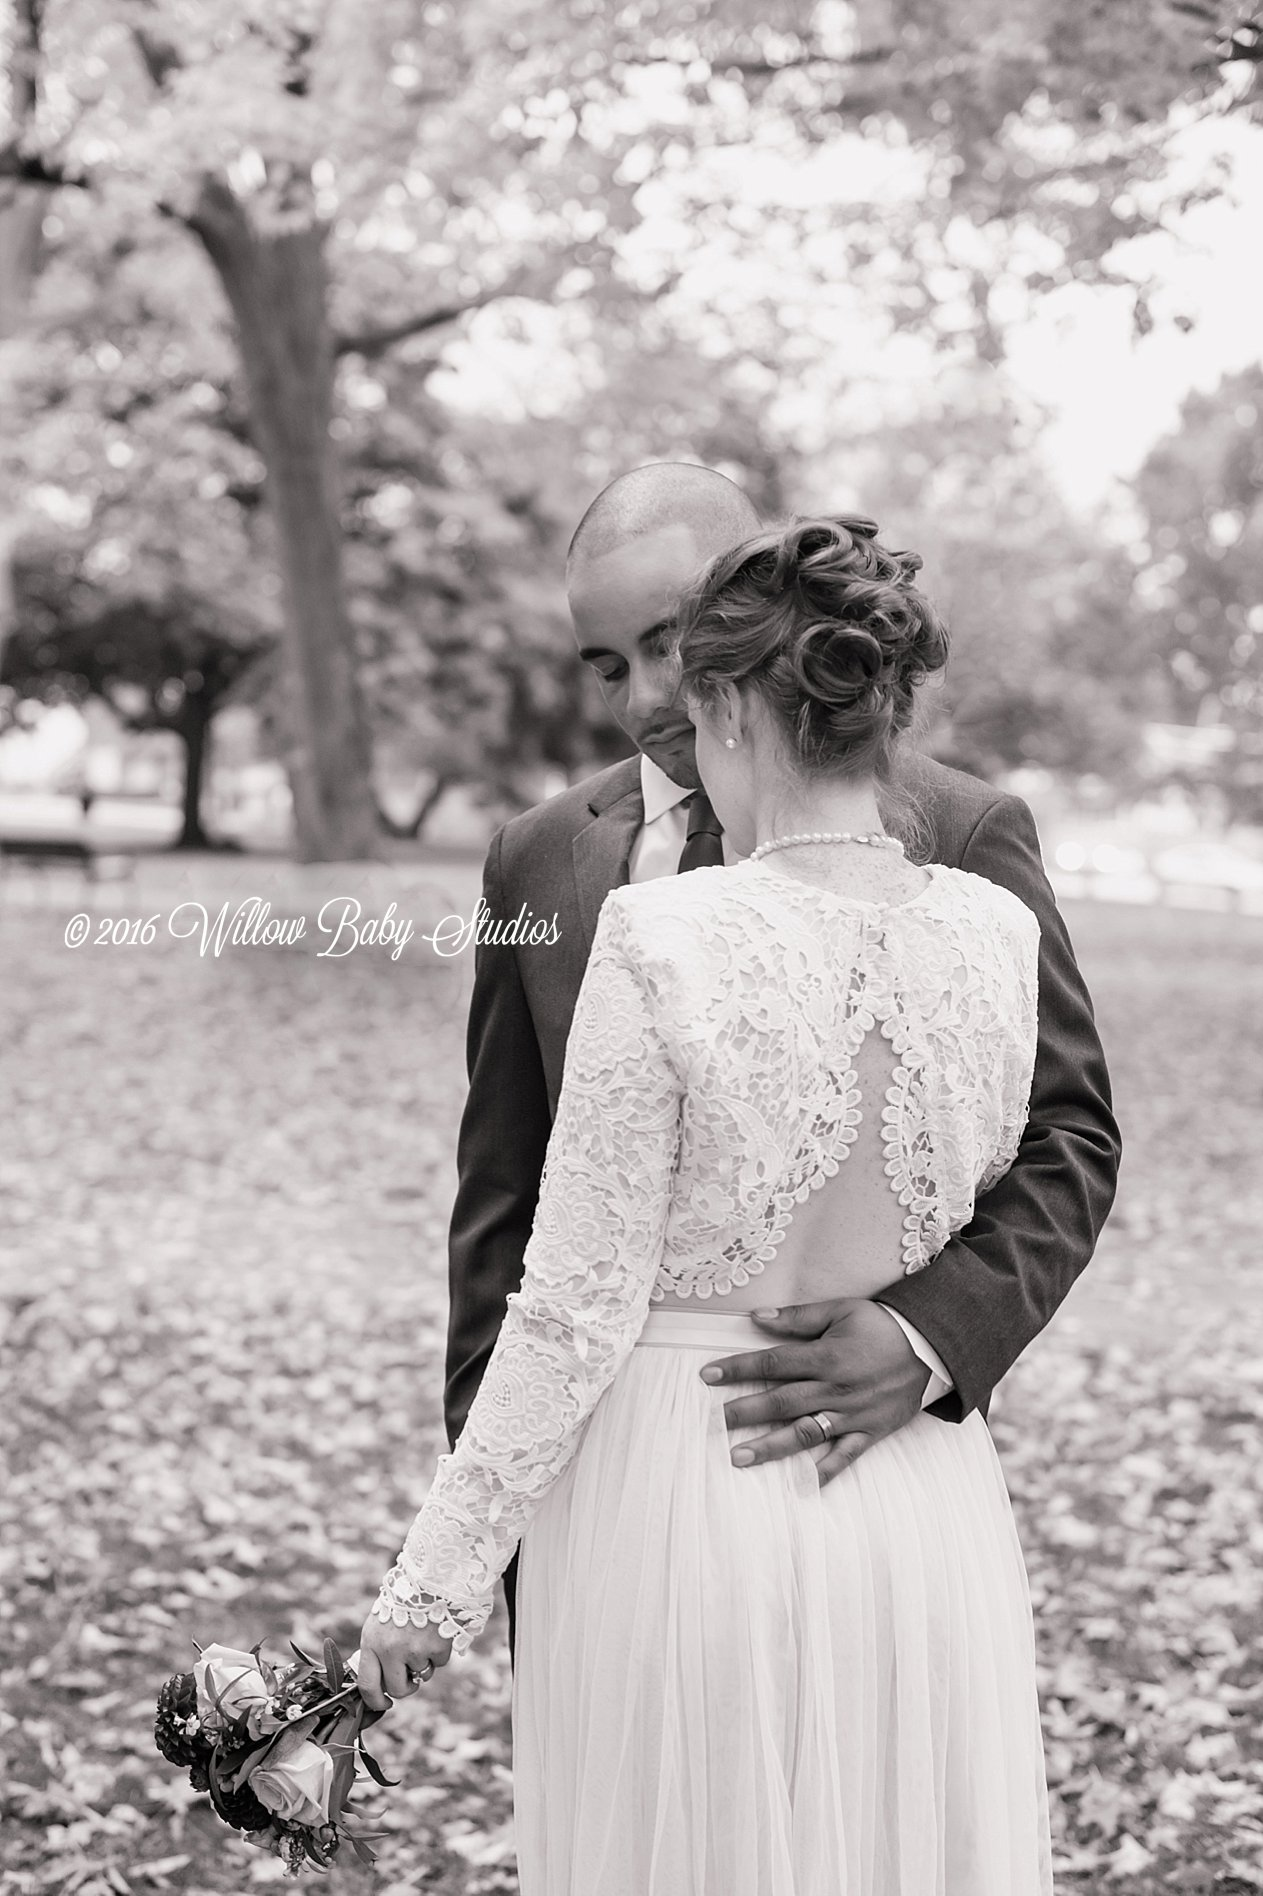 black and white image of married couple embracing outdoors